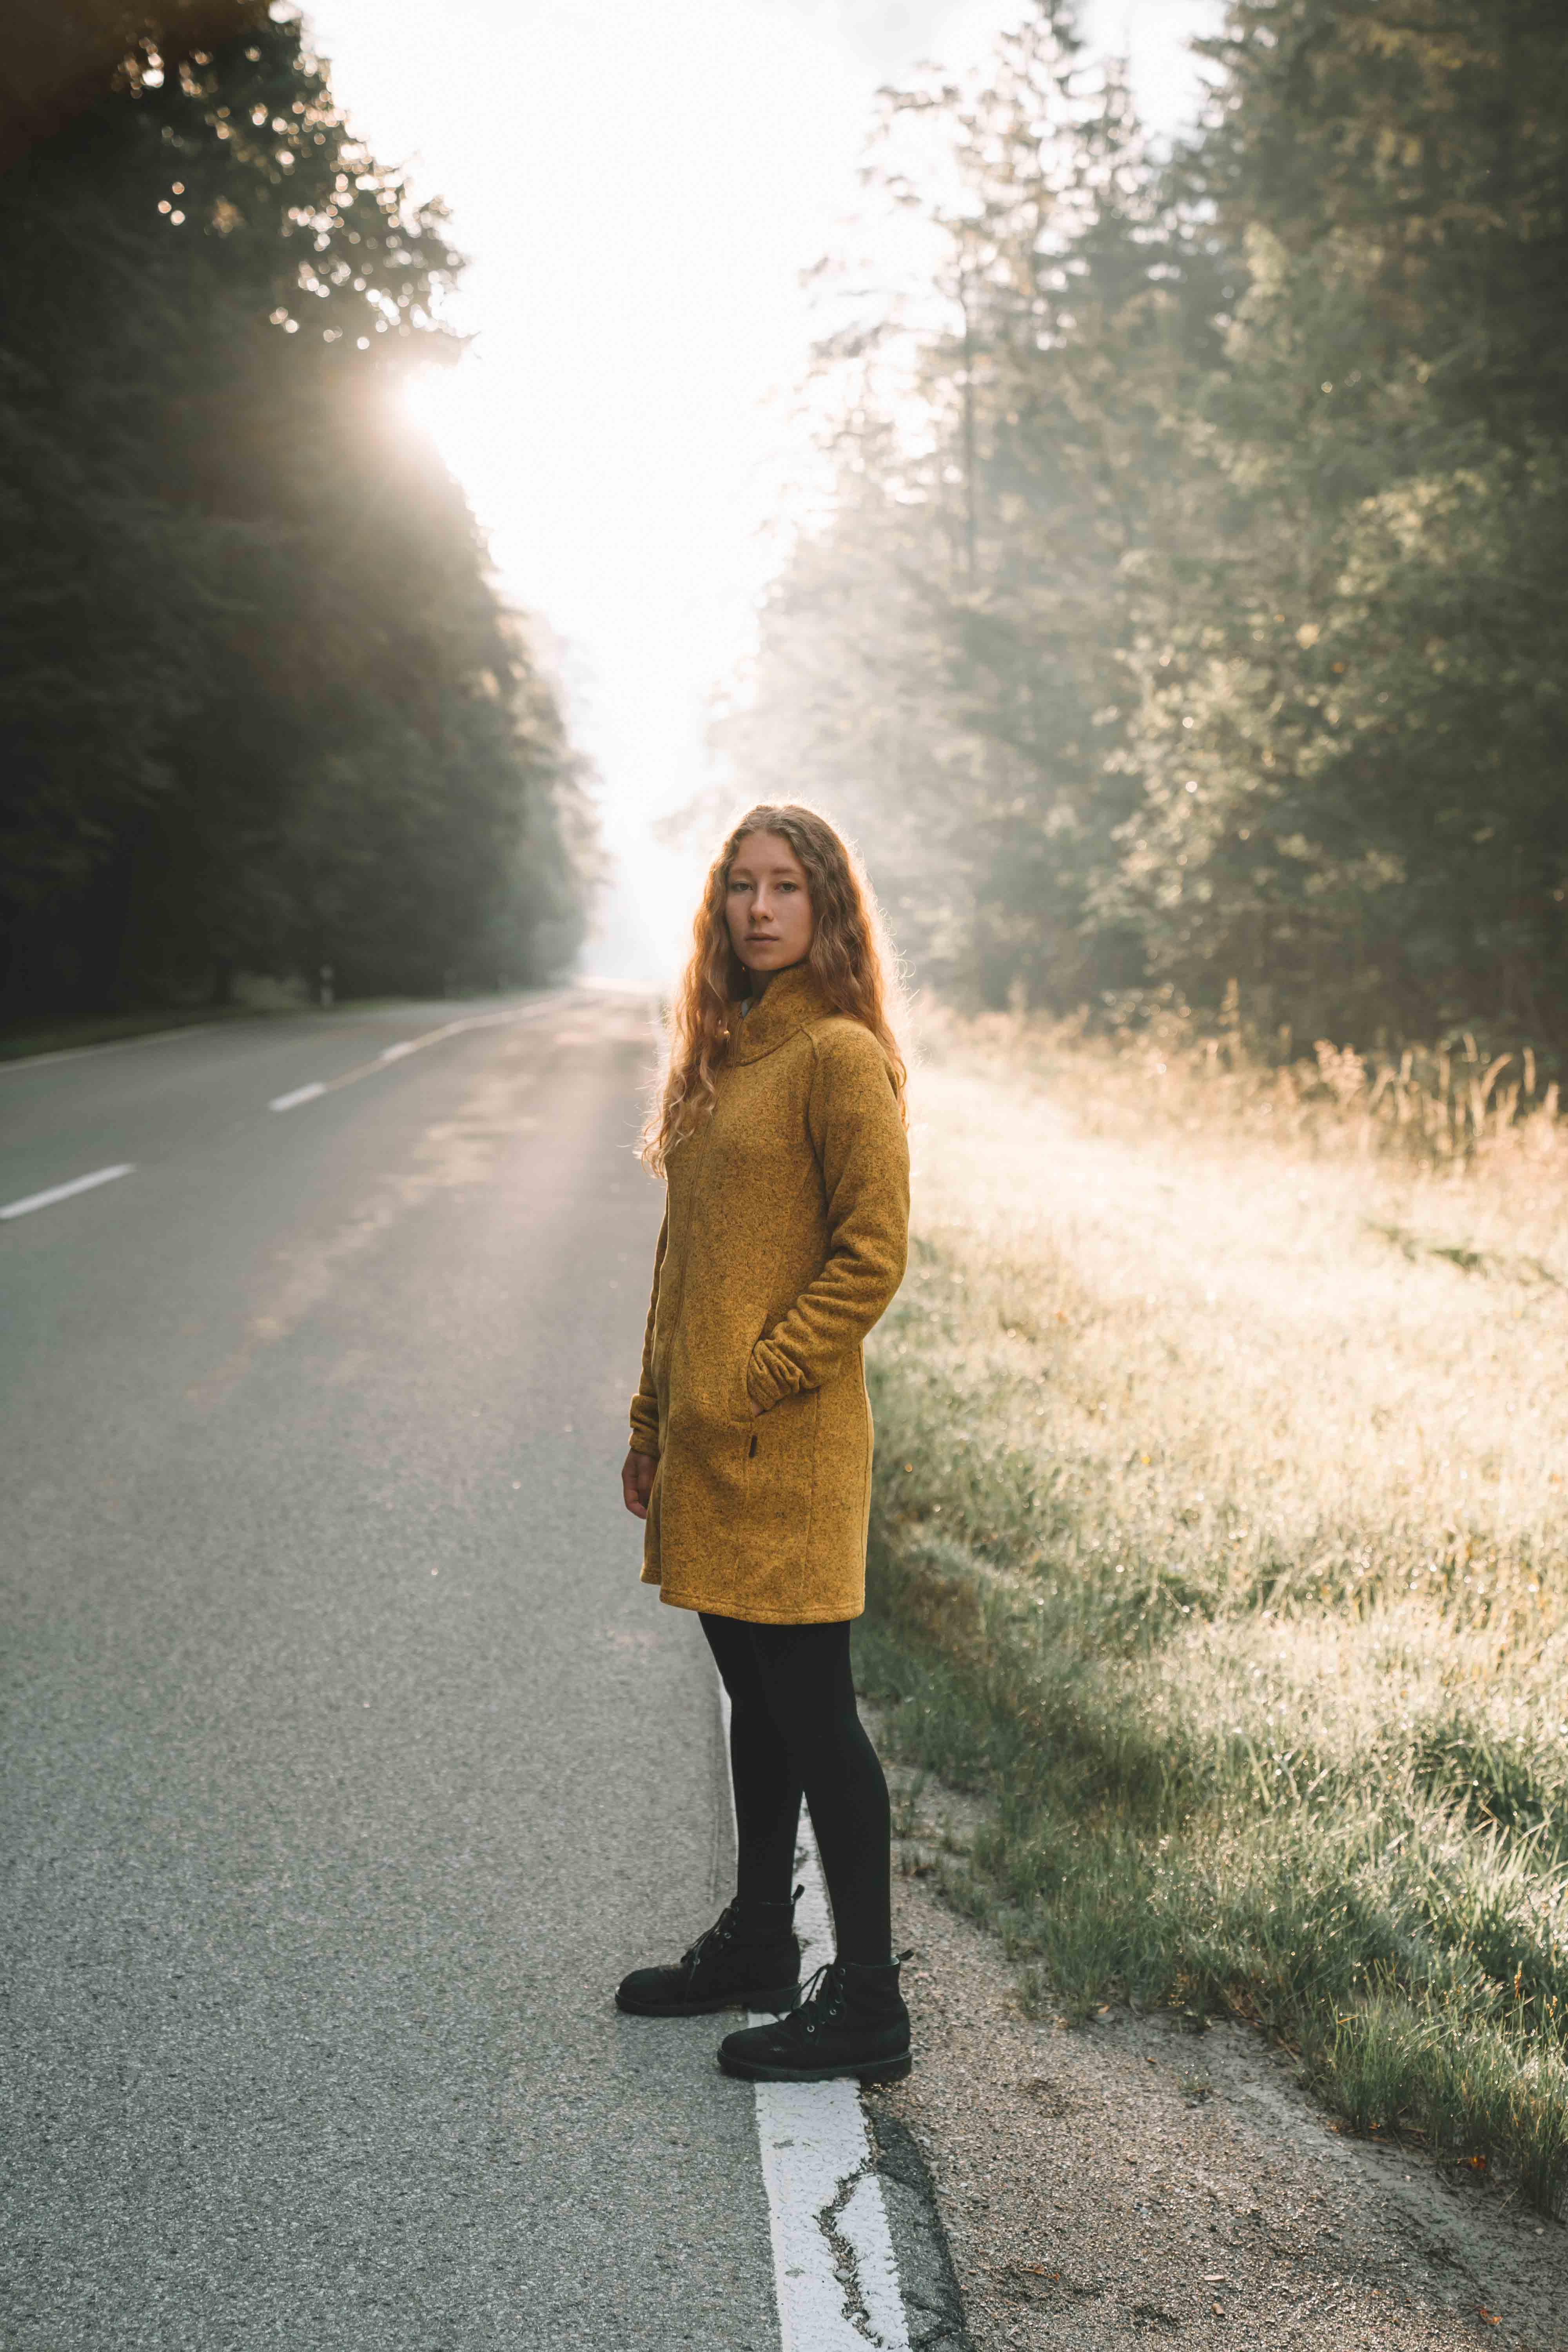 women wearing yellow elkline jacket standing besides a road while the sun rises behind her